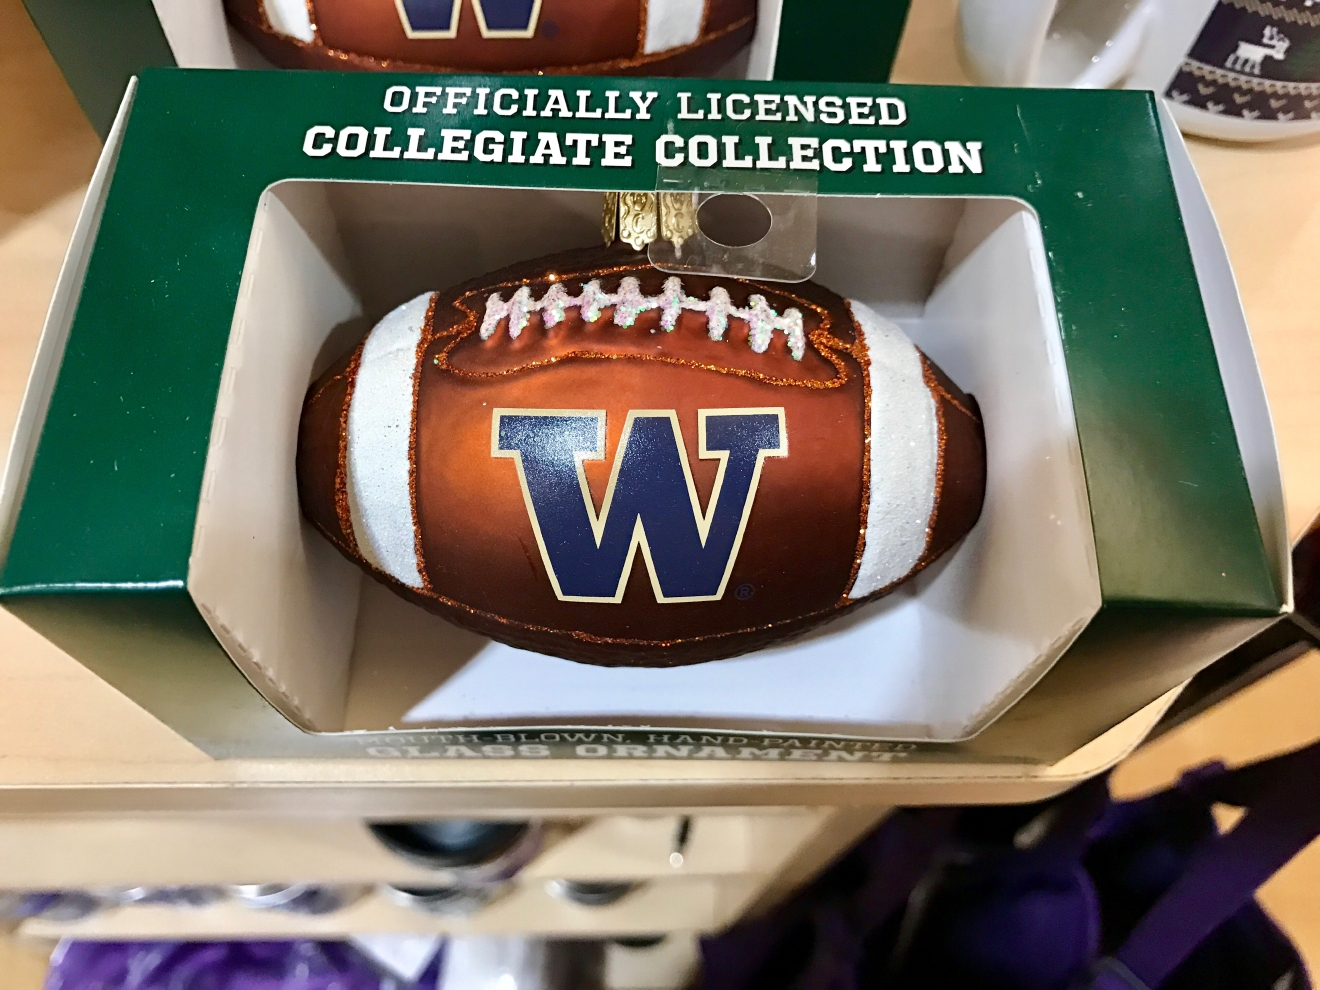 UW Football Ornament - $14.99                                          Whether you're a current student, alum, or just *love* the Dawgs, it's a pretty exciting time to be a Husky fan right now. Just to catch you up, the University of Washington football team is having one of their best seasons in years, and will be playing the Peach Bowl in Atlanta on December 31st. If you know a Dawg fan, they're probably salivating at the mouth right about now. Which is why it's a perfect time to give them a themed gift! Here are some of the coolest Husky gear we saw at the University Bookstore on the Avenue during our last visit. Pro Tip: They're open 10 a.m. - 7 p.m. on Christmas Eve! (Image: Britt Thorson / Seattle Refined)